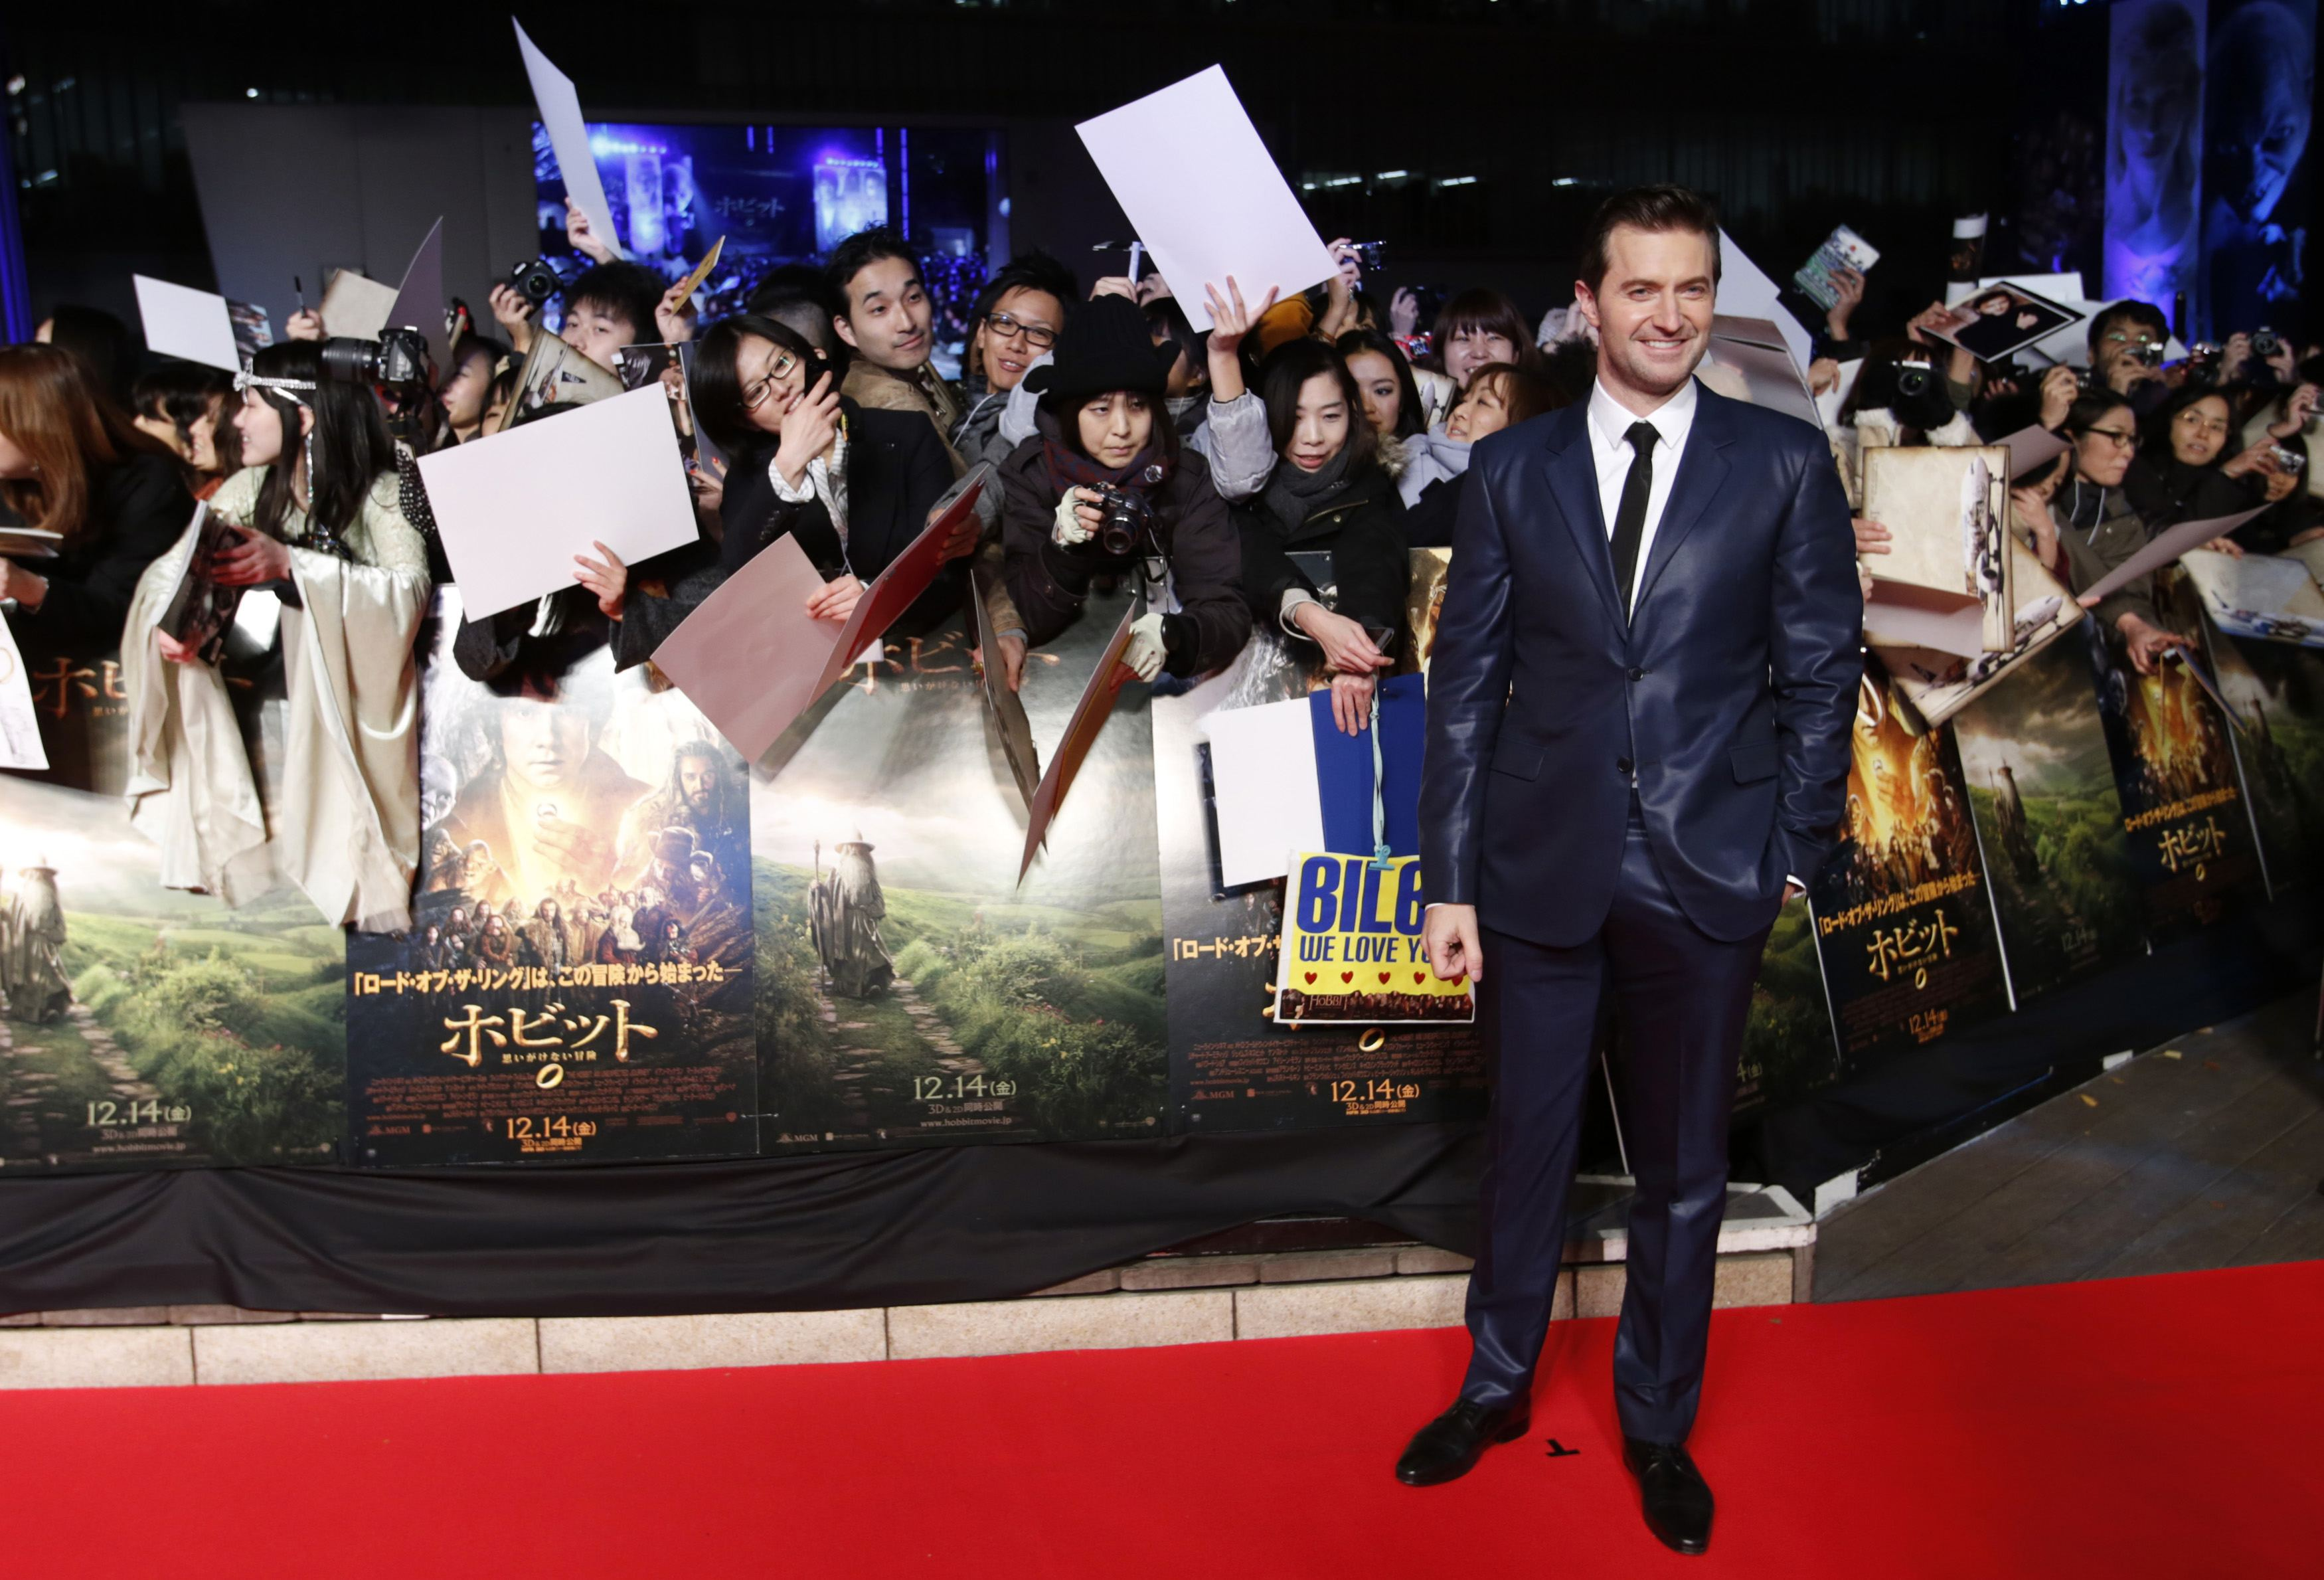 Hobbits Movie Cast Hobbit Movie Cast Tokyo